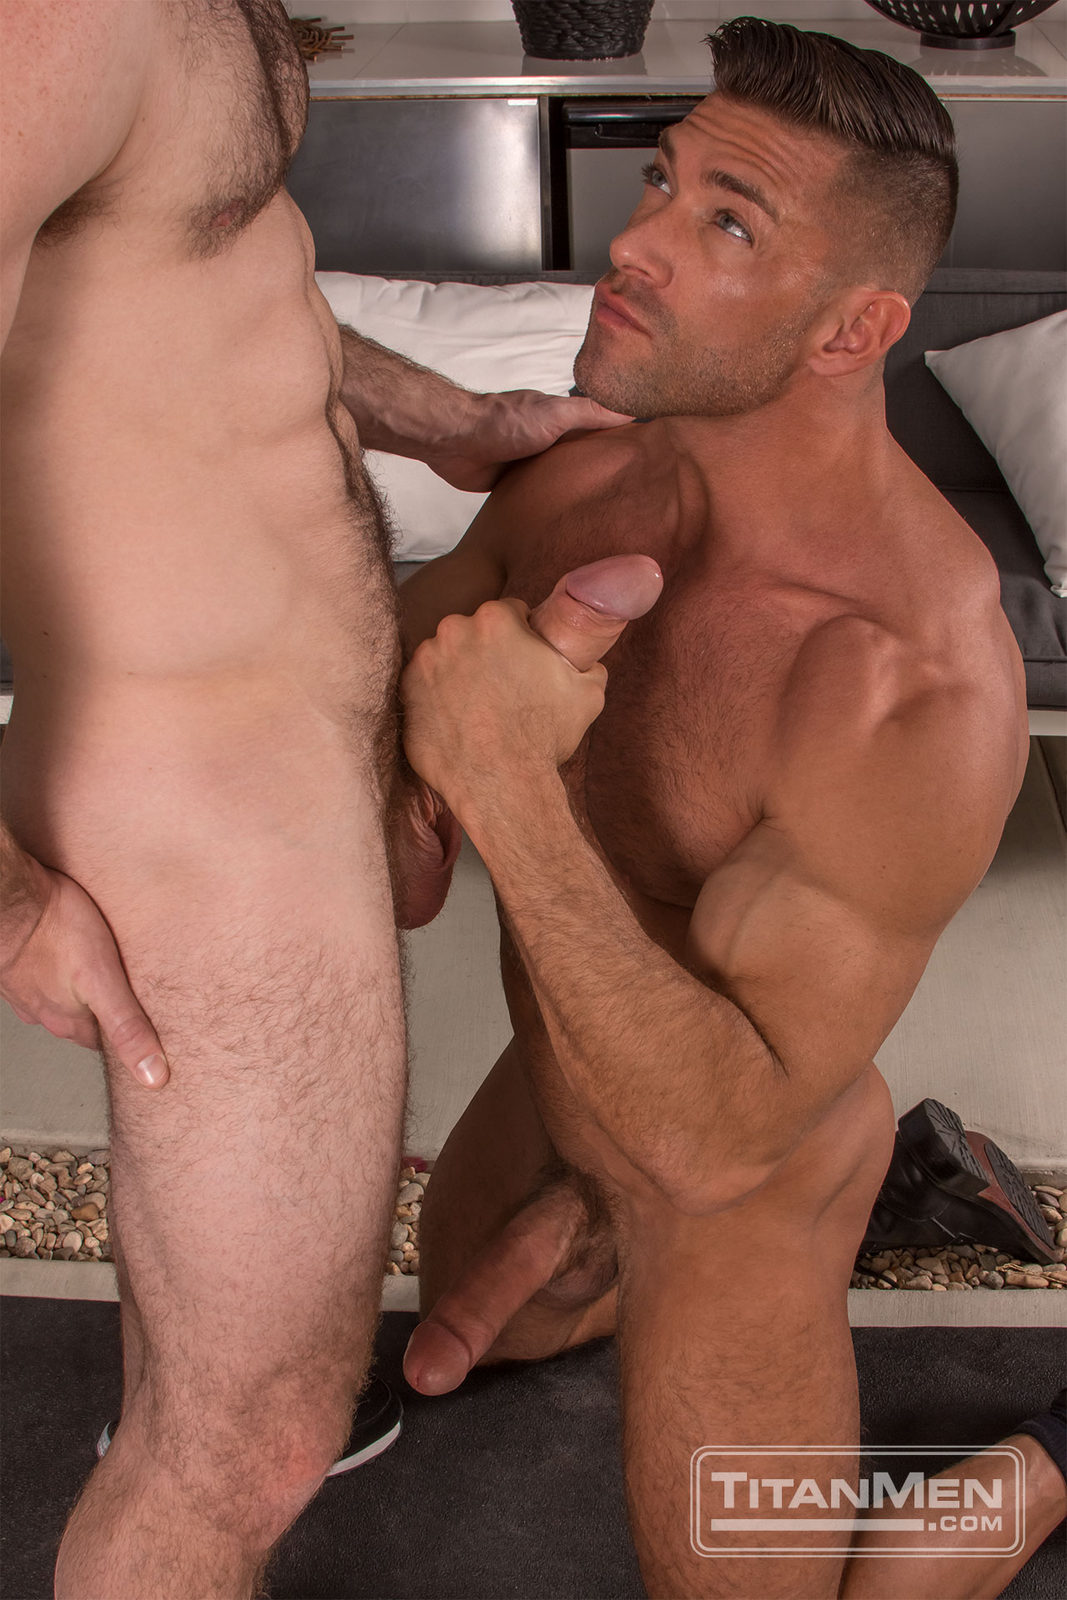 Cum guys gay real redhot gay public sex 6